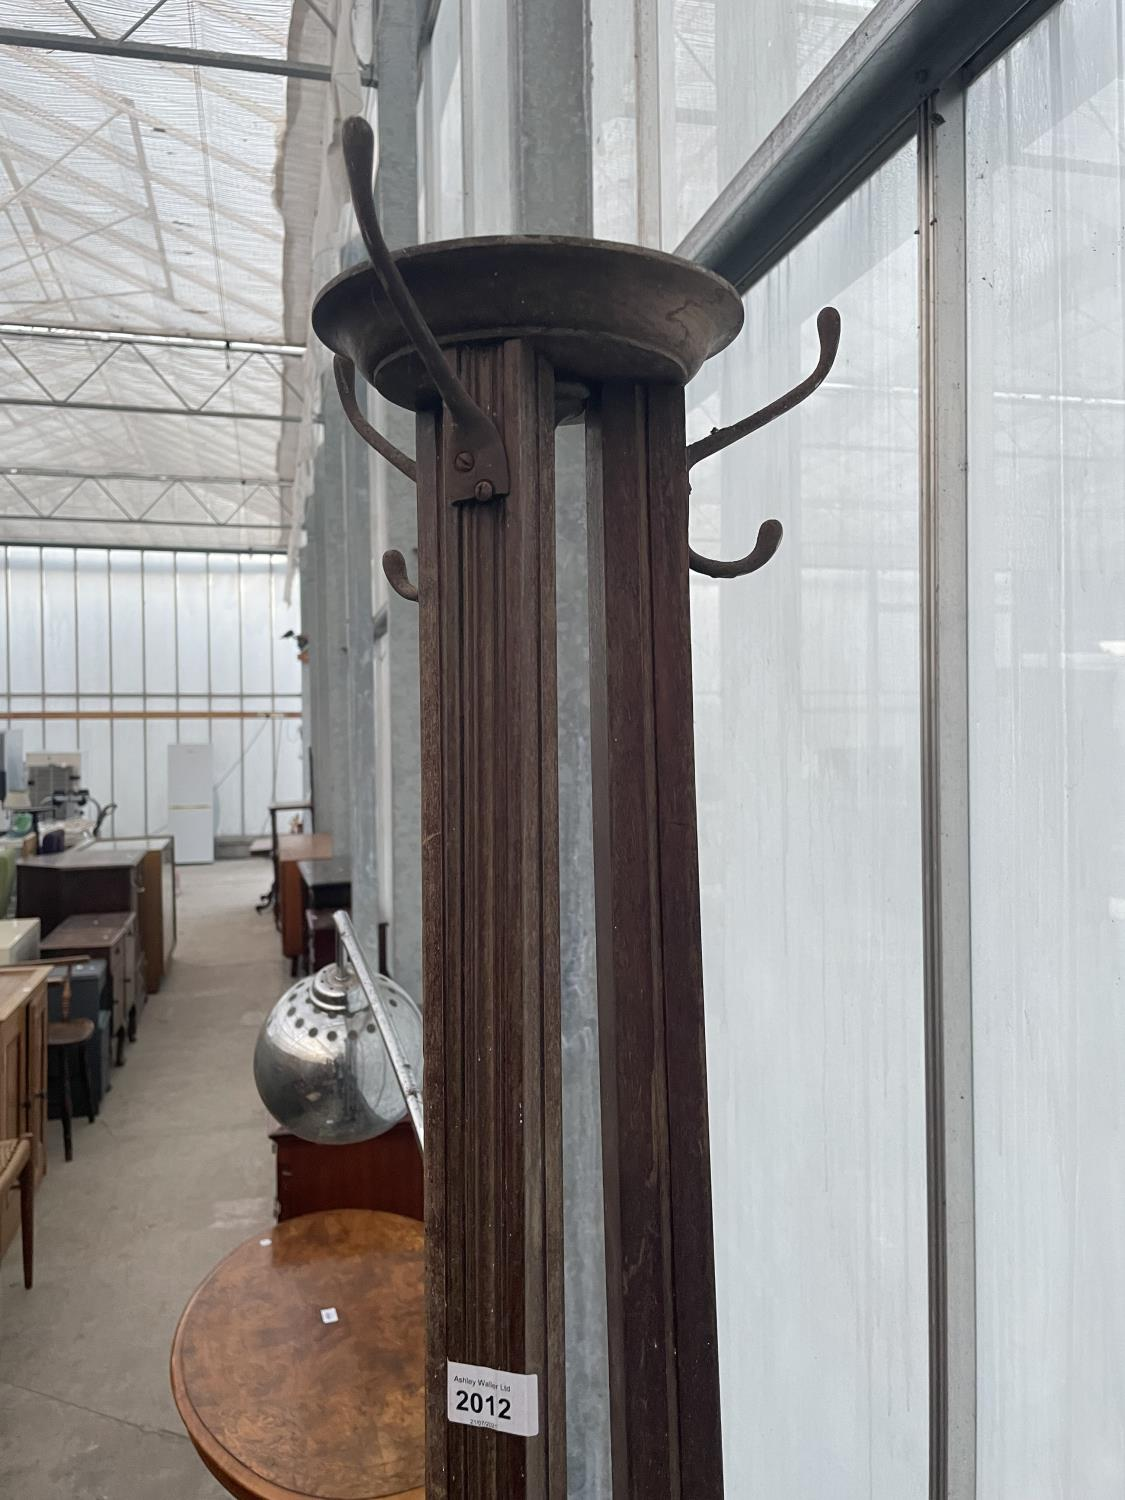 AN EARLY 20TH CENTURY MAHOGANY COAT/HAT STAND ON THREE TAPERING COLUMNS - Image 2 of 3